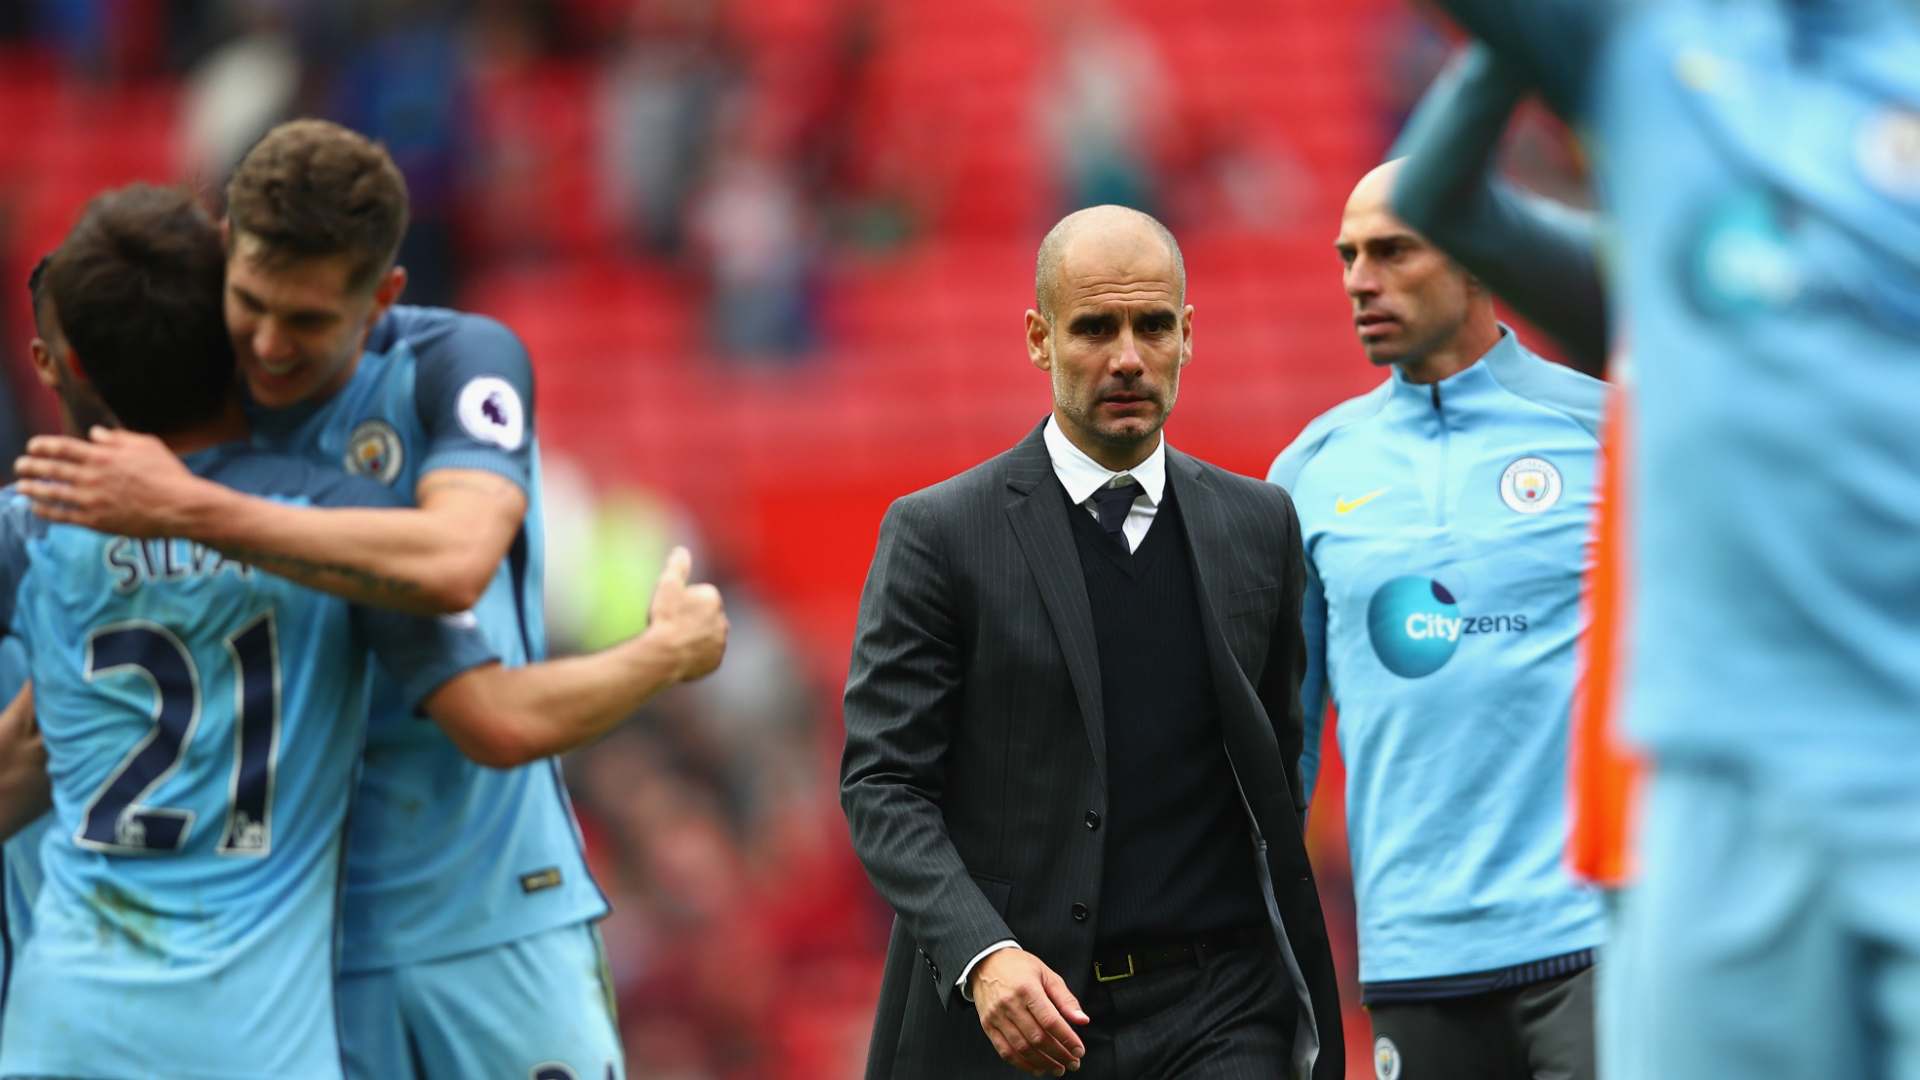 Guardiola tells Man City fans to end Champions League feud